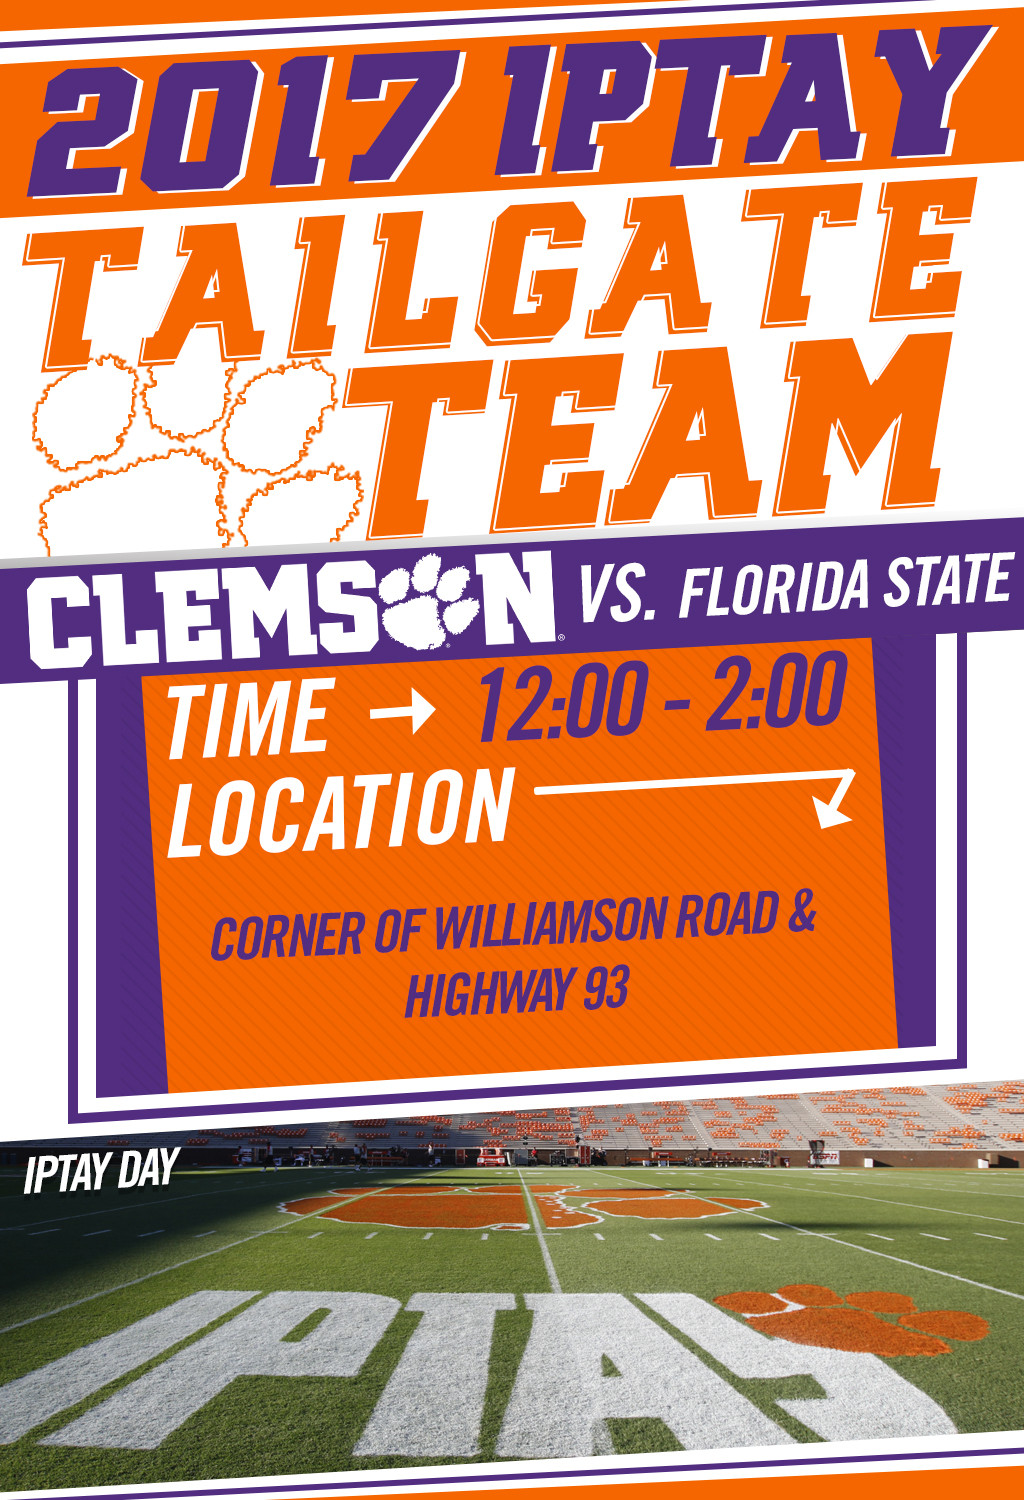 Tailgate Team Readies For Final Regular Season ACC Match-Up